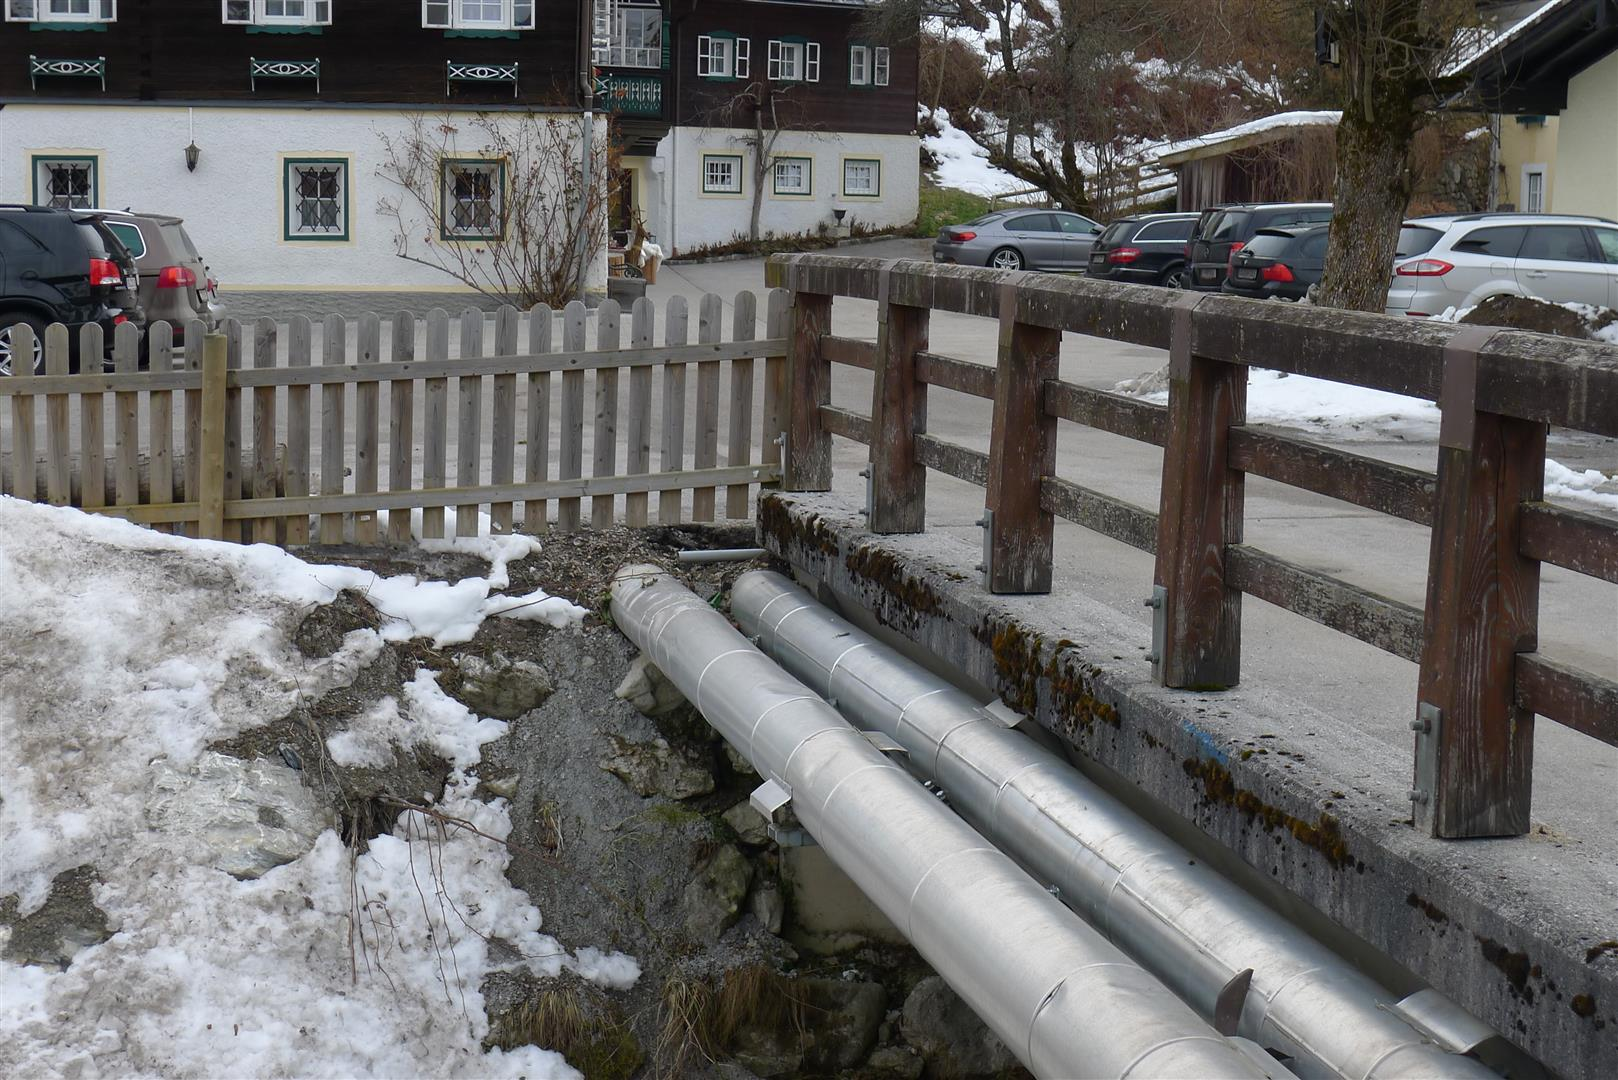 District Heating System in Flachau Austria Snapshots from Berlin #5B4D46